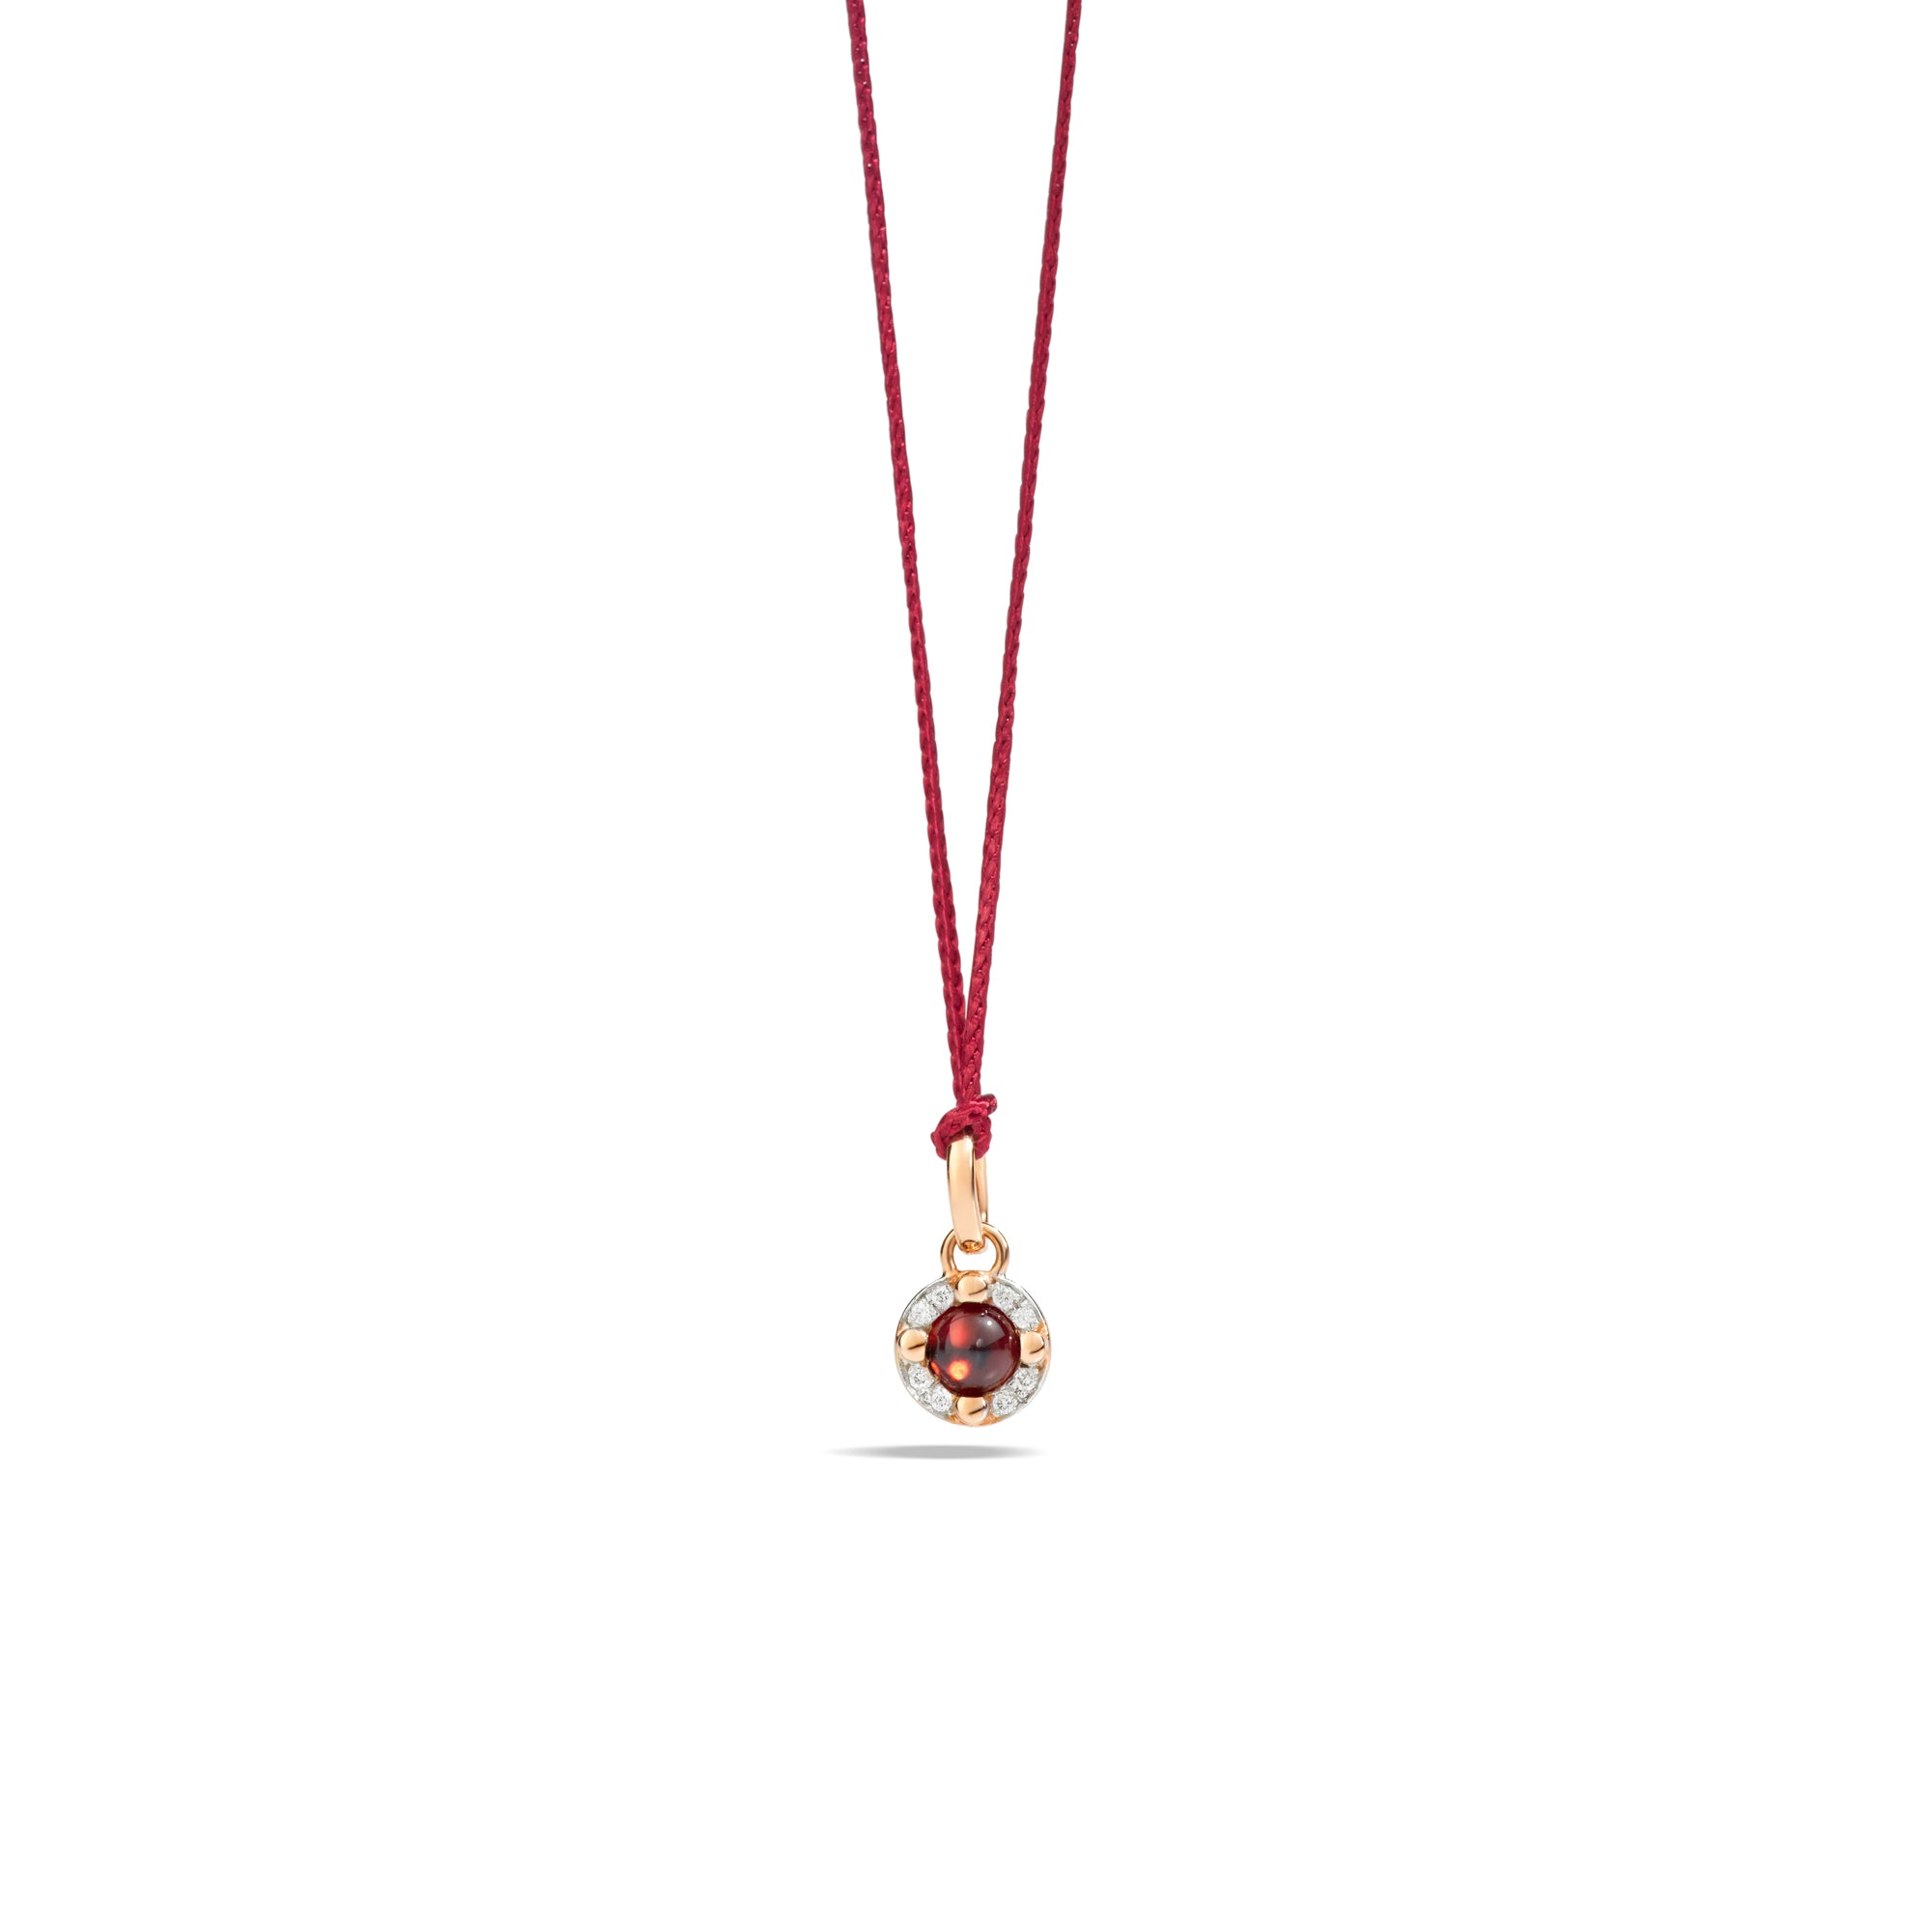 M'ama non M'ama Pendant in 18k Rose Gold with Garnet and Diamonds - Orsini Jewellers NZ